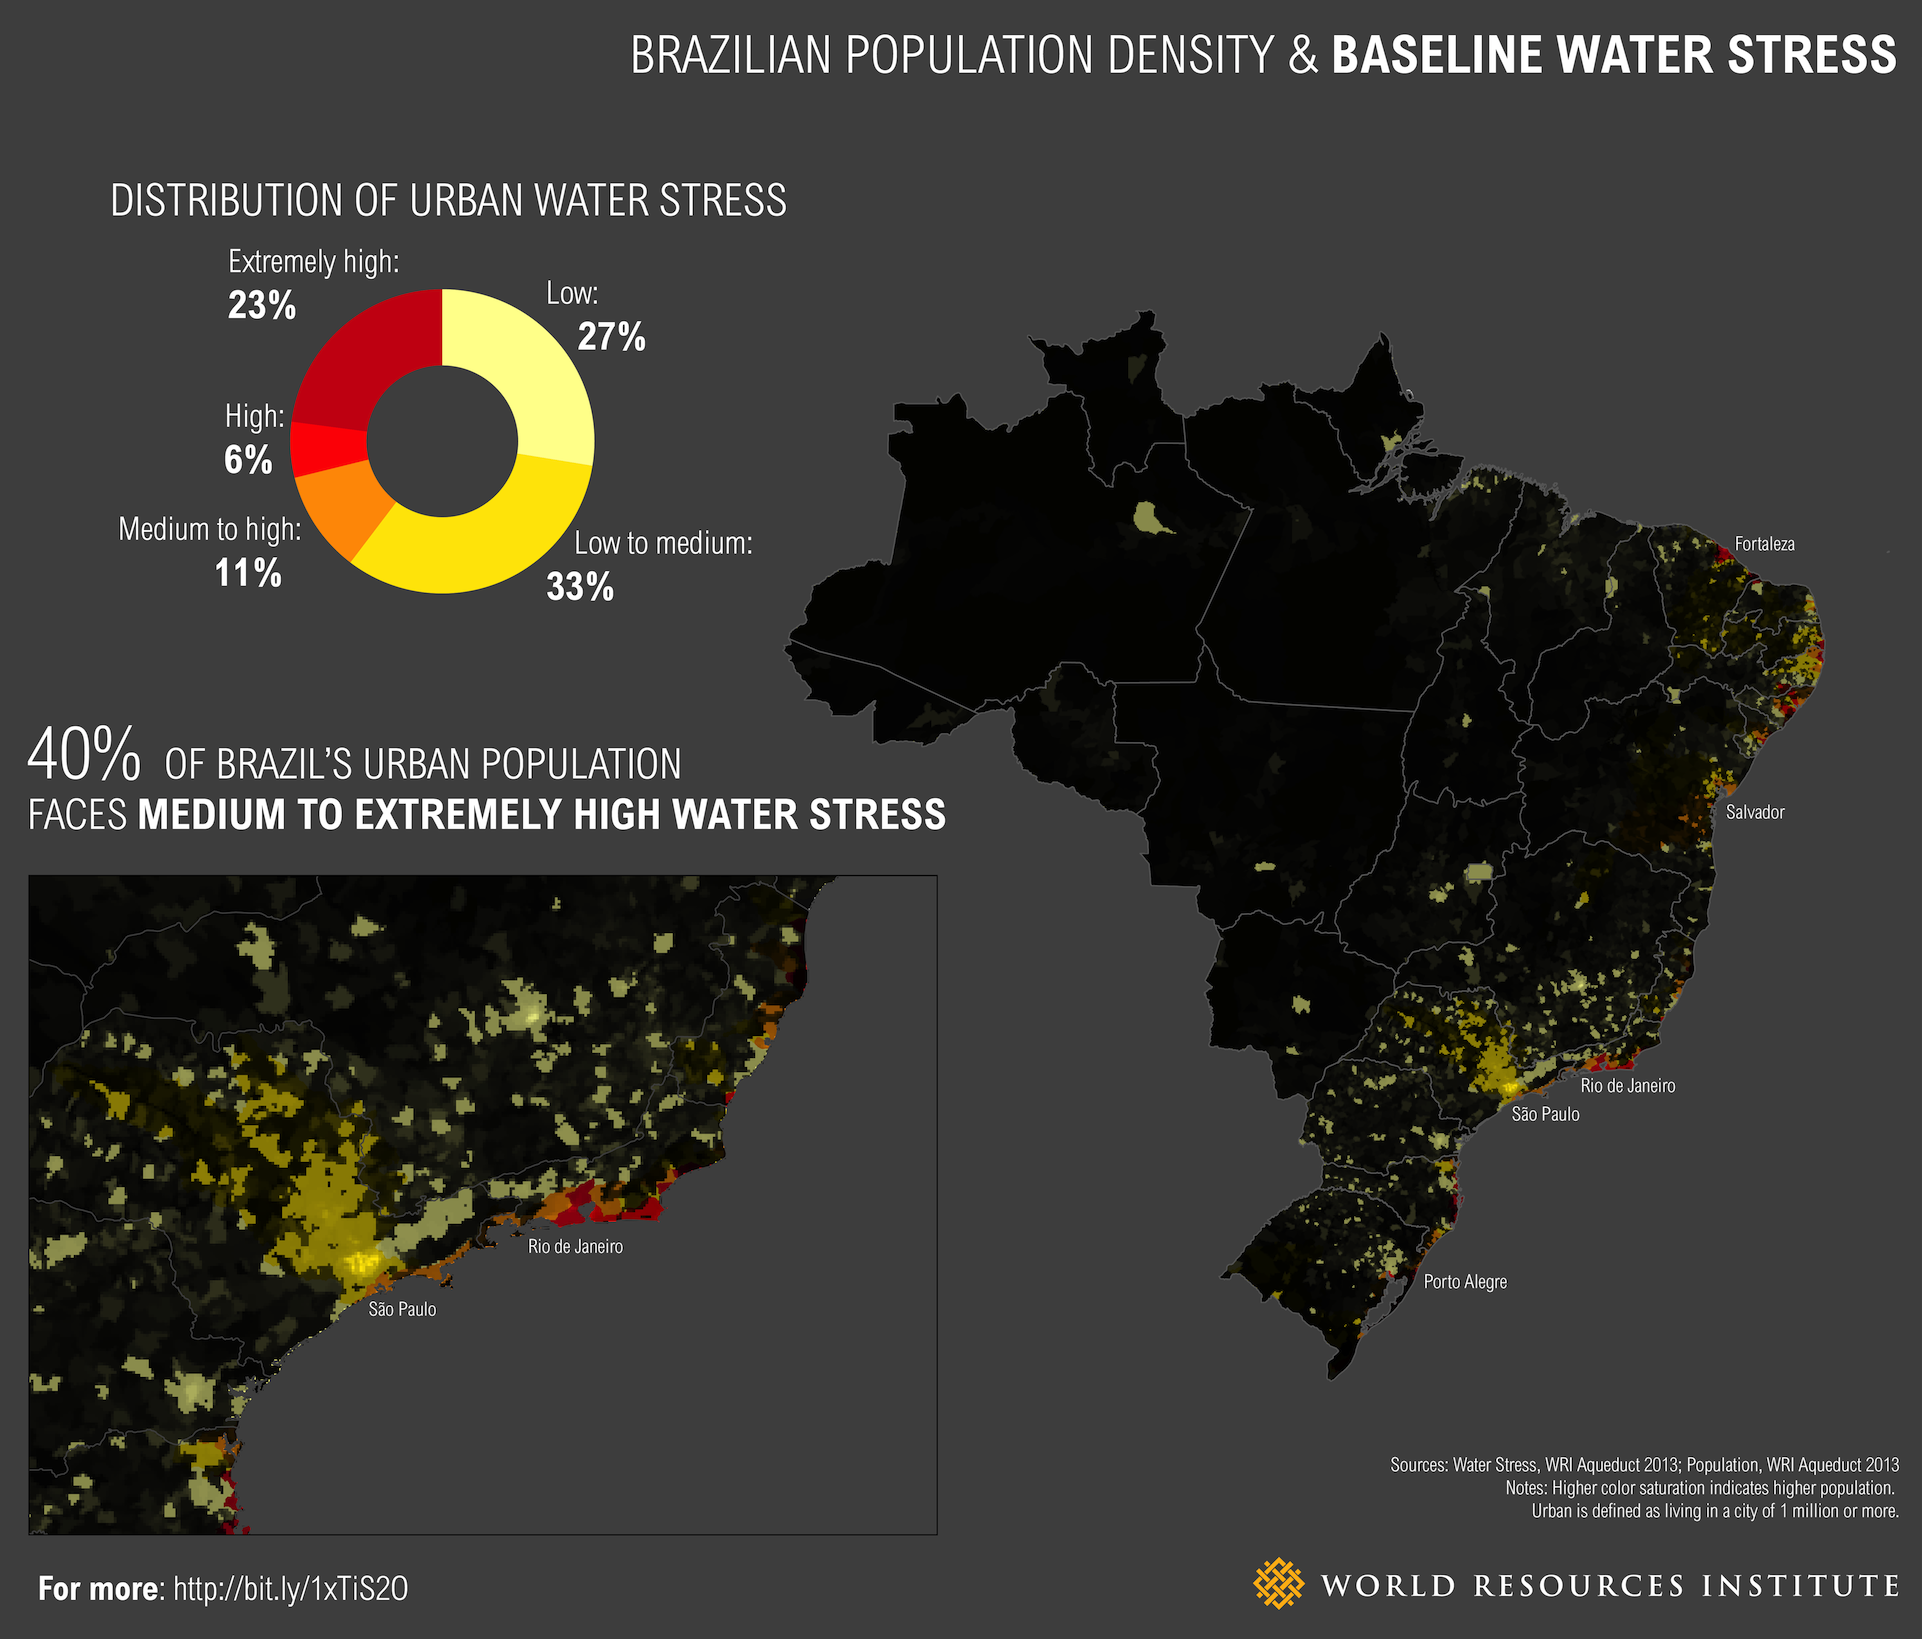 <p>Figure 3: Brazil Population Density &amp; Baseline Water Stress</p>